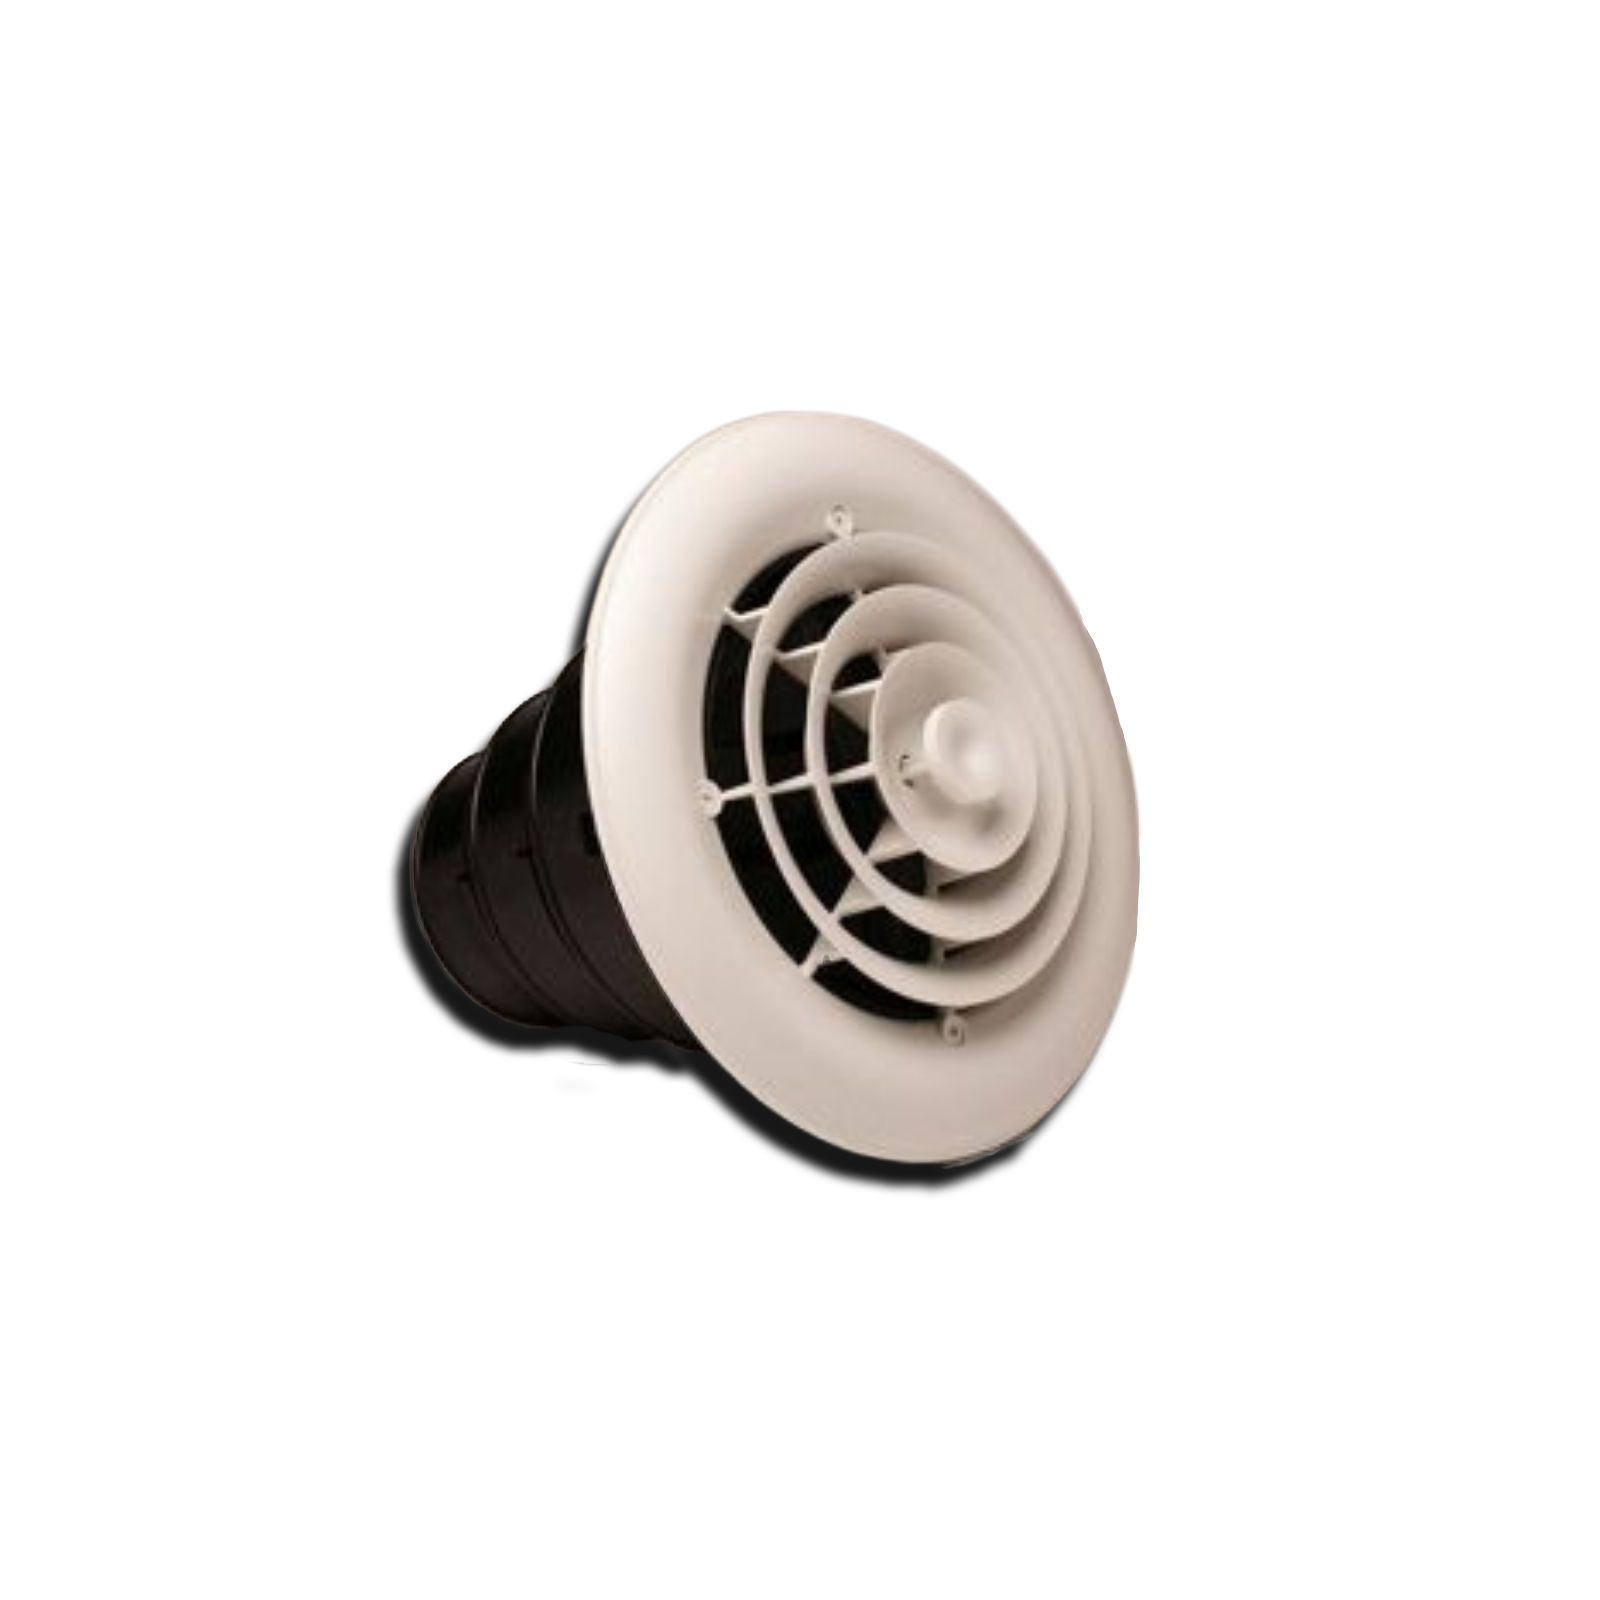 Rectorseal 81911 Mv360 8 Ceiling Diffuser With Round Grille Damper Box 6 7 Collar